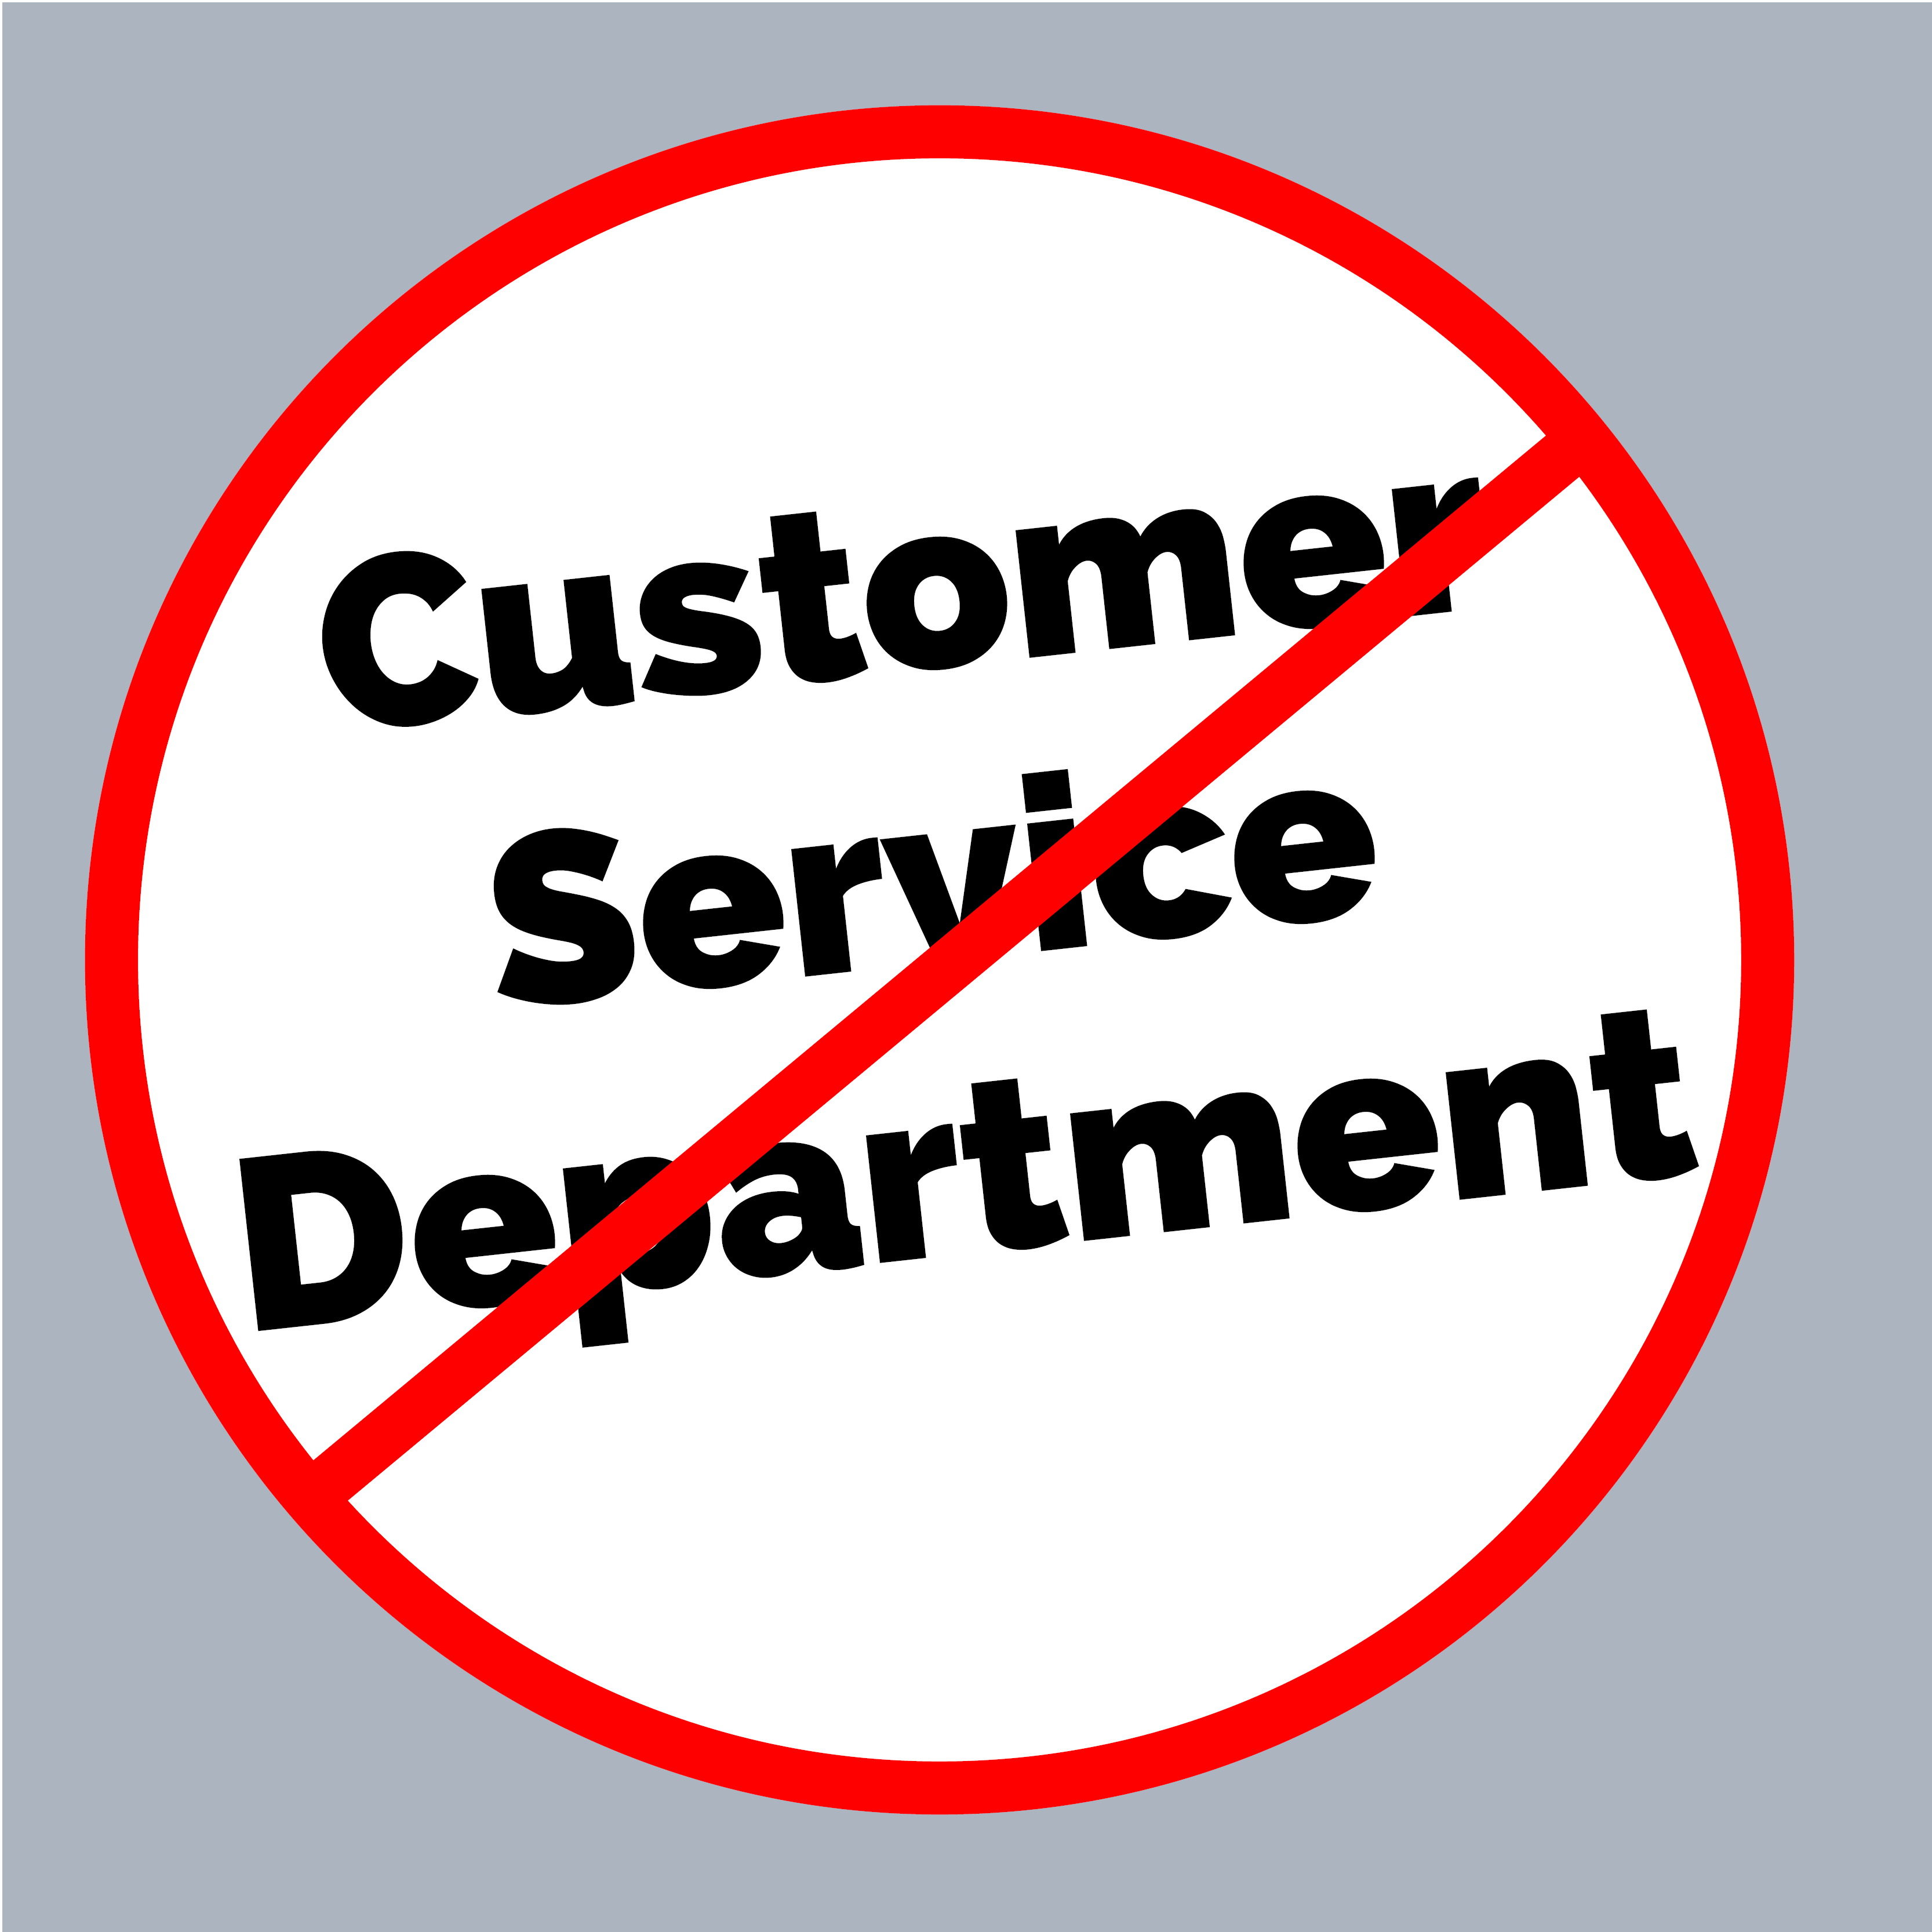 carls customer service department Schedule service with carl's buick gmc  if you arrive late your service consultant will most likely be with another customer, same if you arrive too early when you arrive, pull into the service check in lane our greeter will get the process started the second part is for you to meet with our factory trained service consultant, he or she.